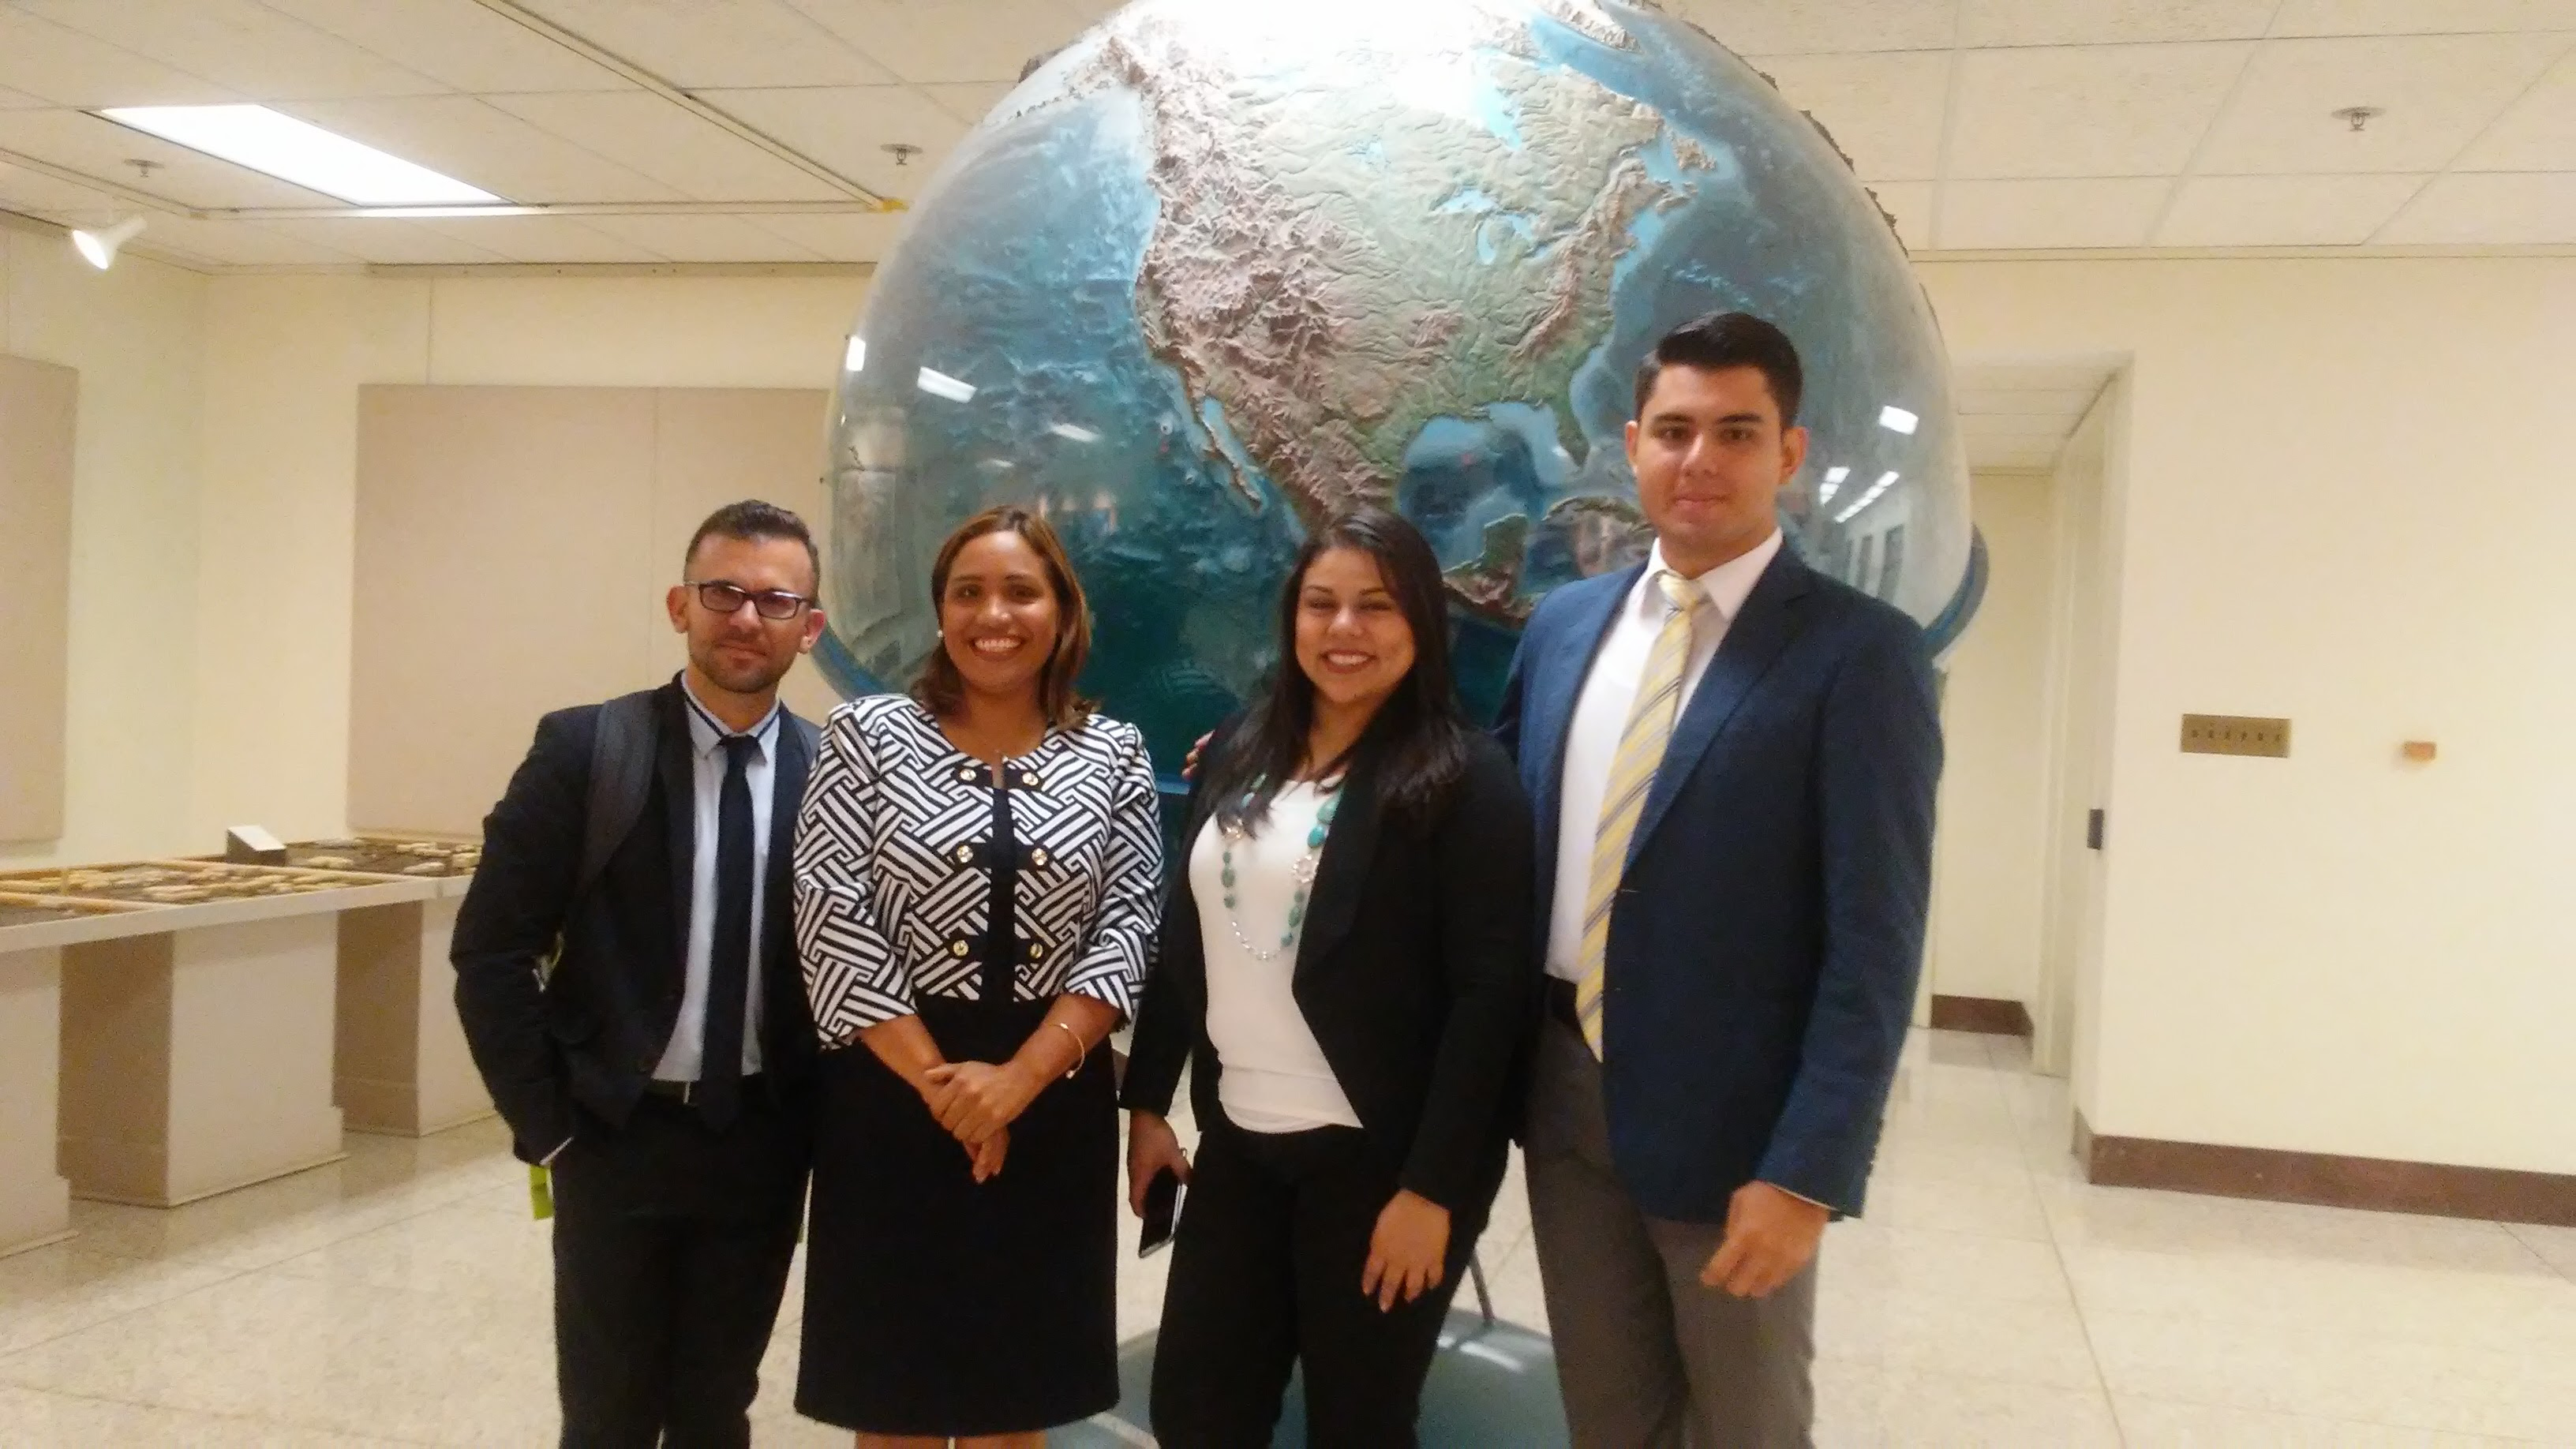 honduras society and culture complete report world trade press